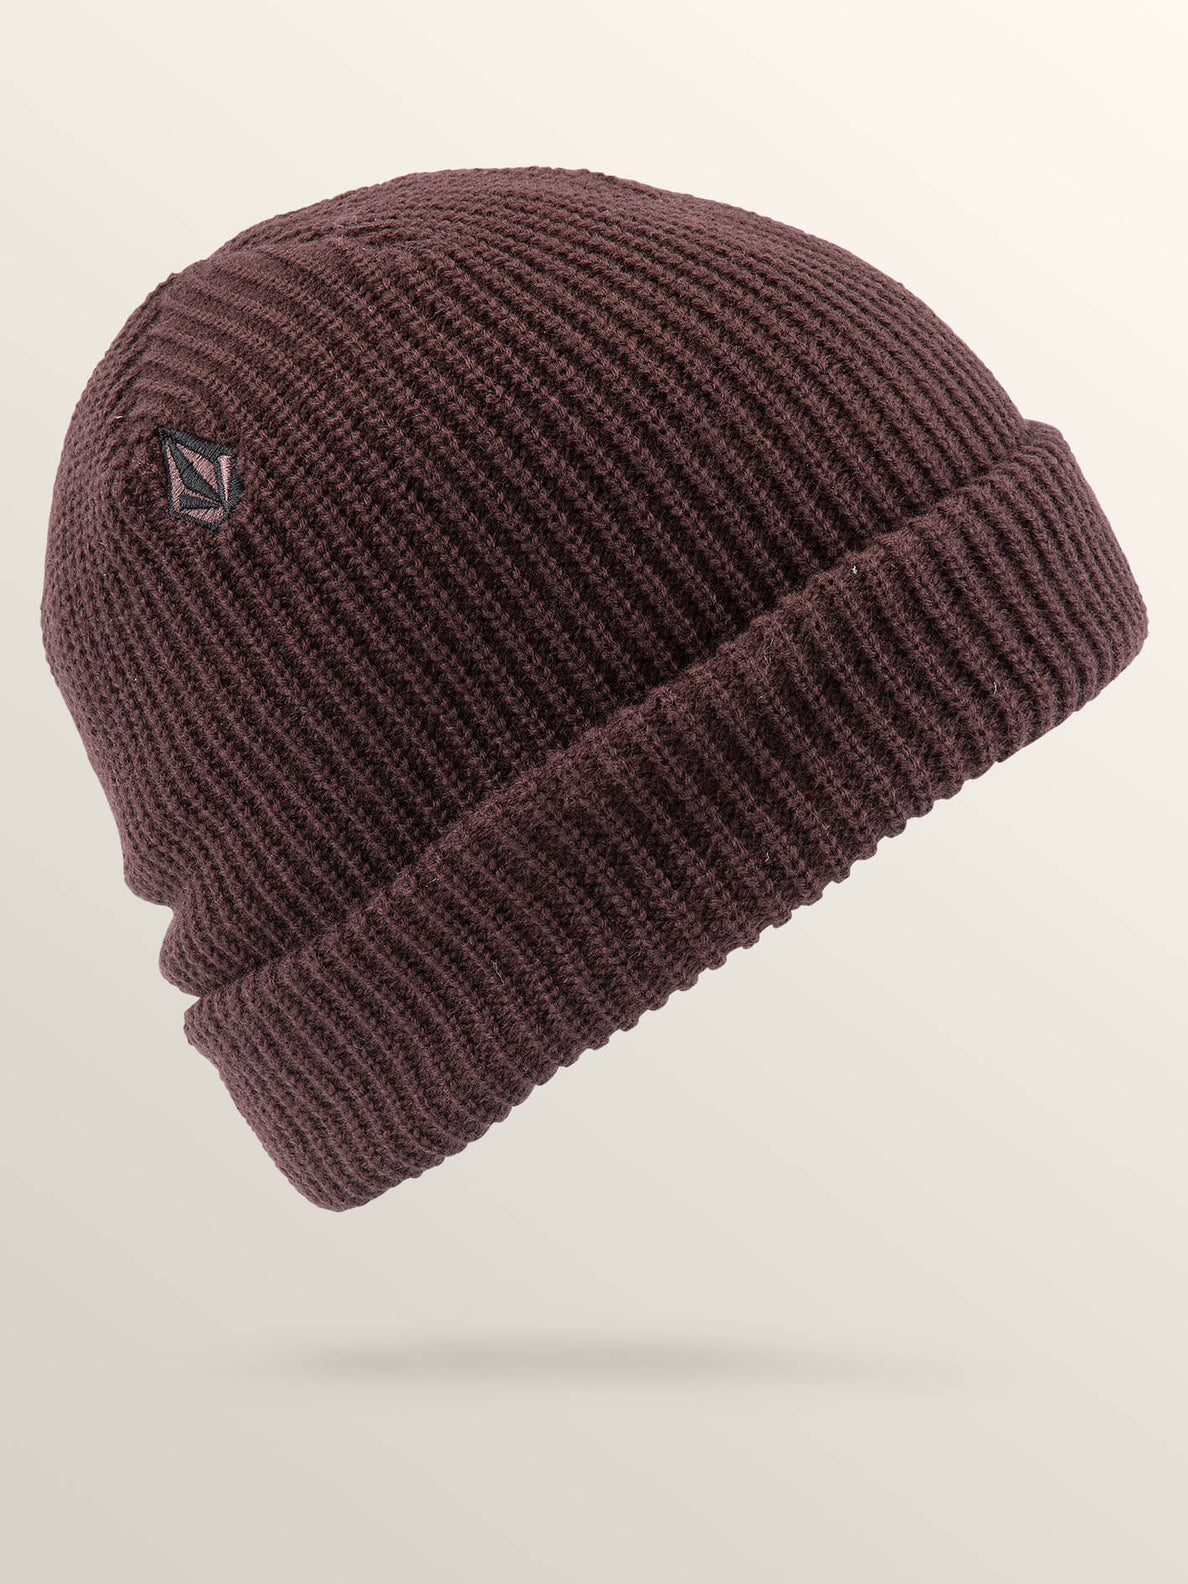 cfd284043d0 Full Stone Beanie In Bordeaux Brown